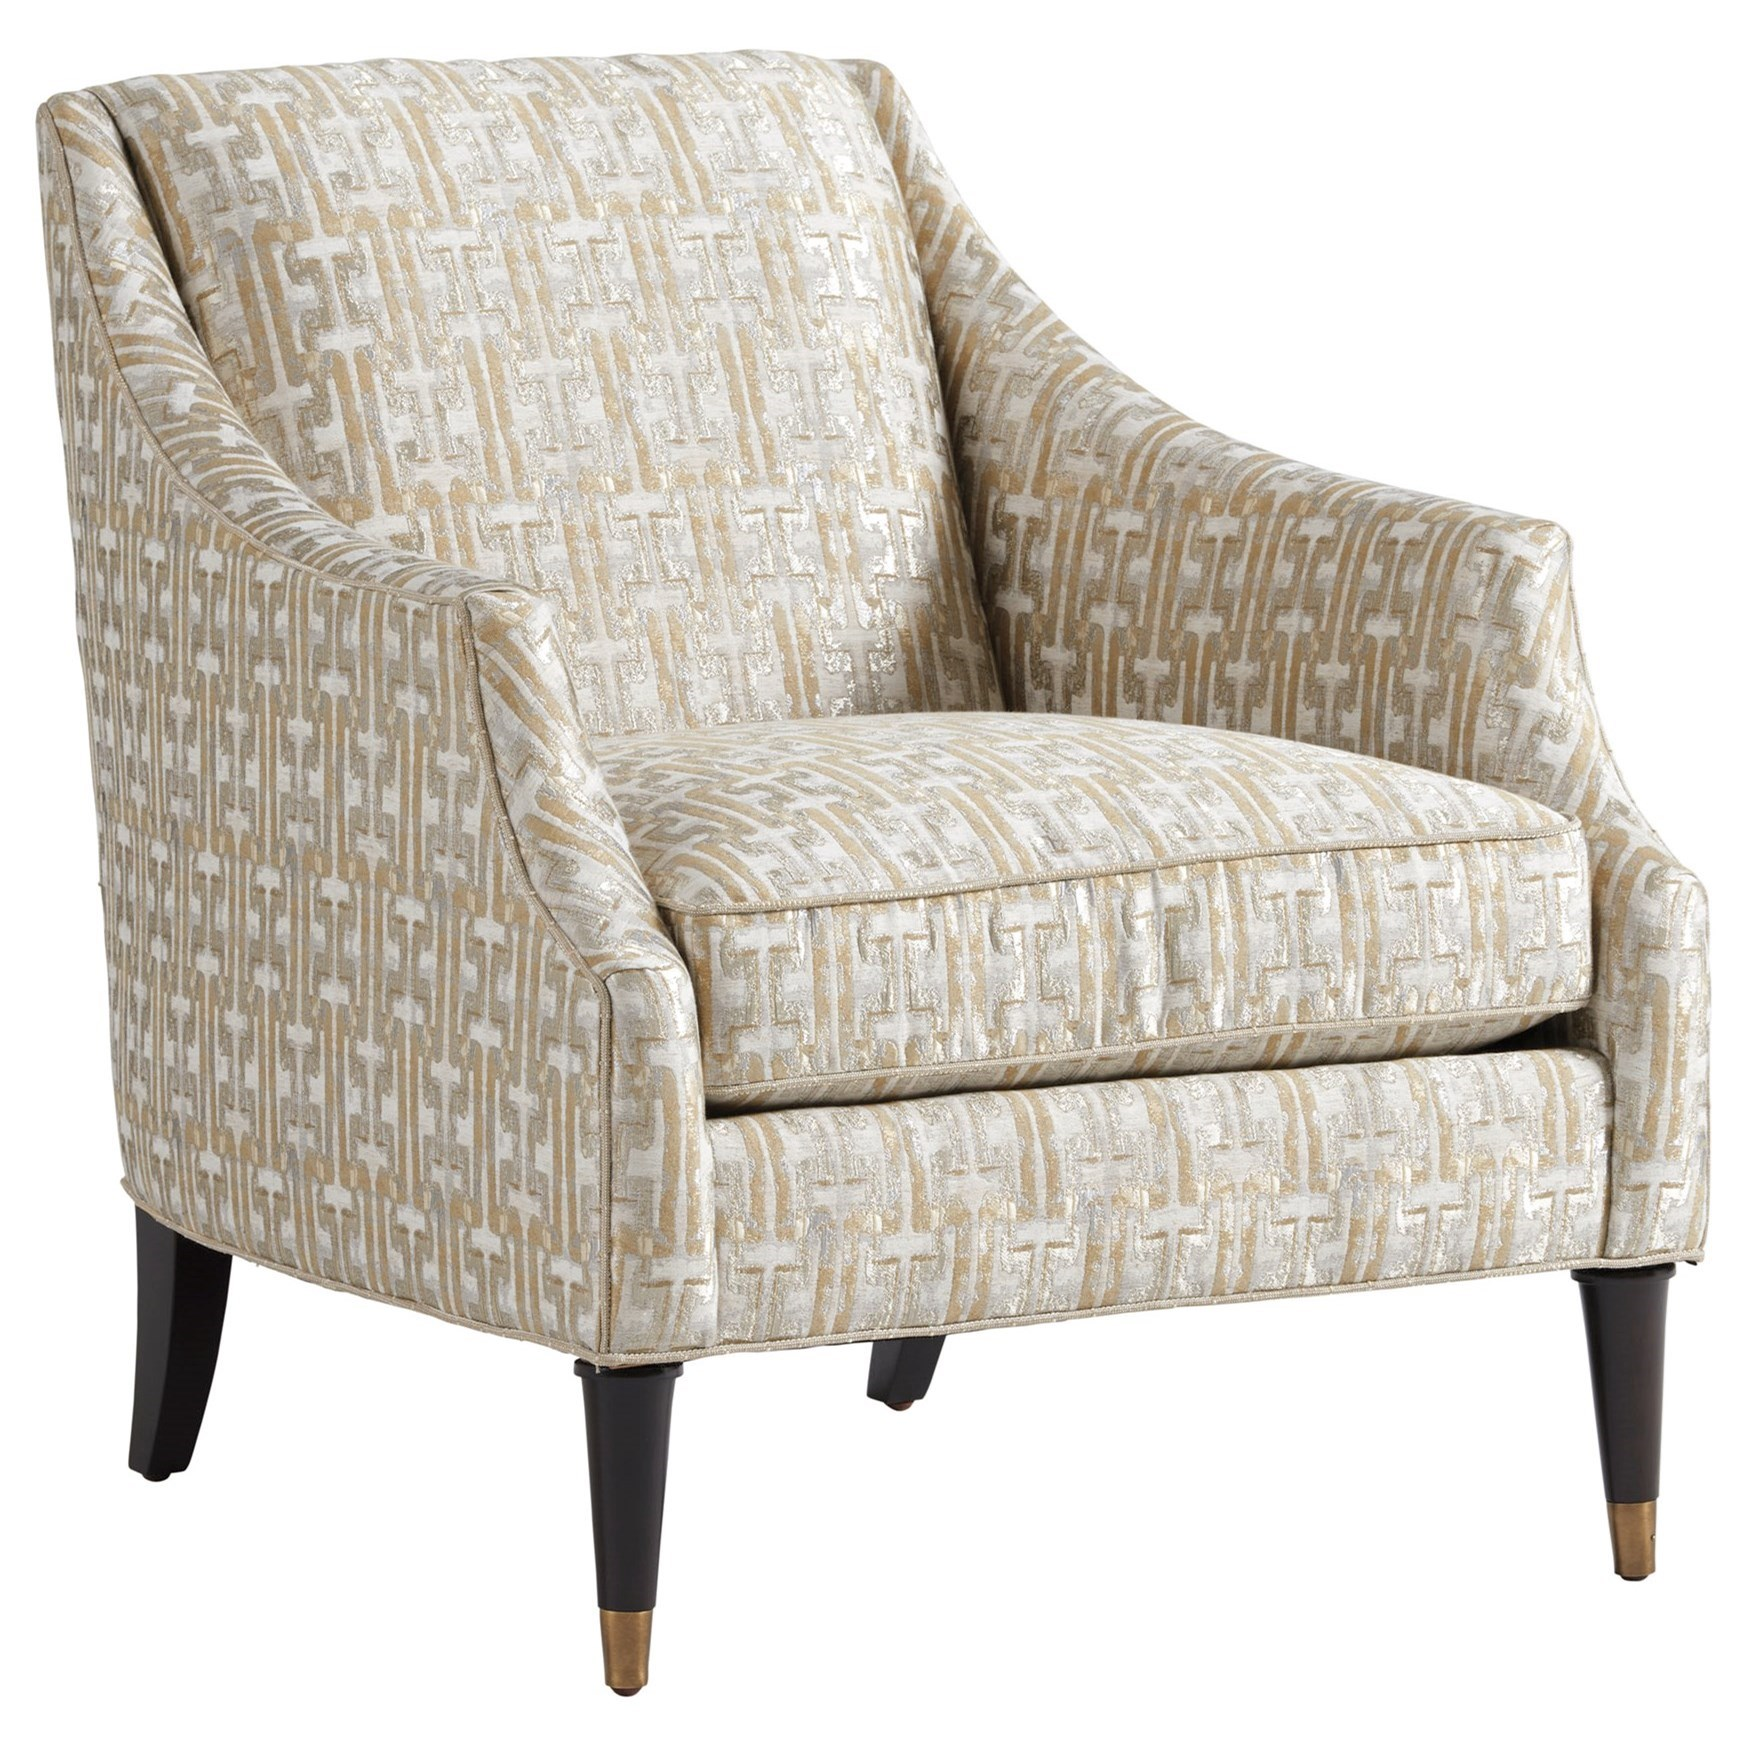 Carlyle Kerney Chair by Lexington at Baer's Furniture